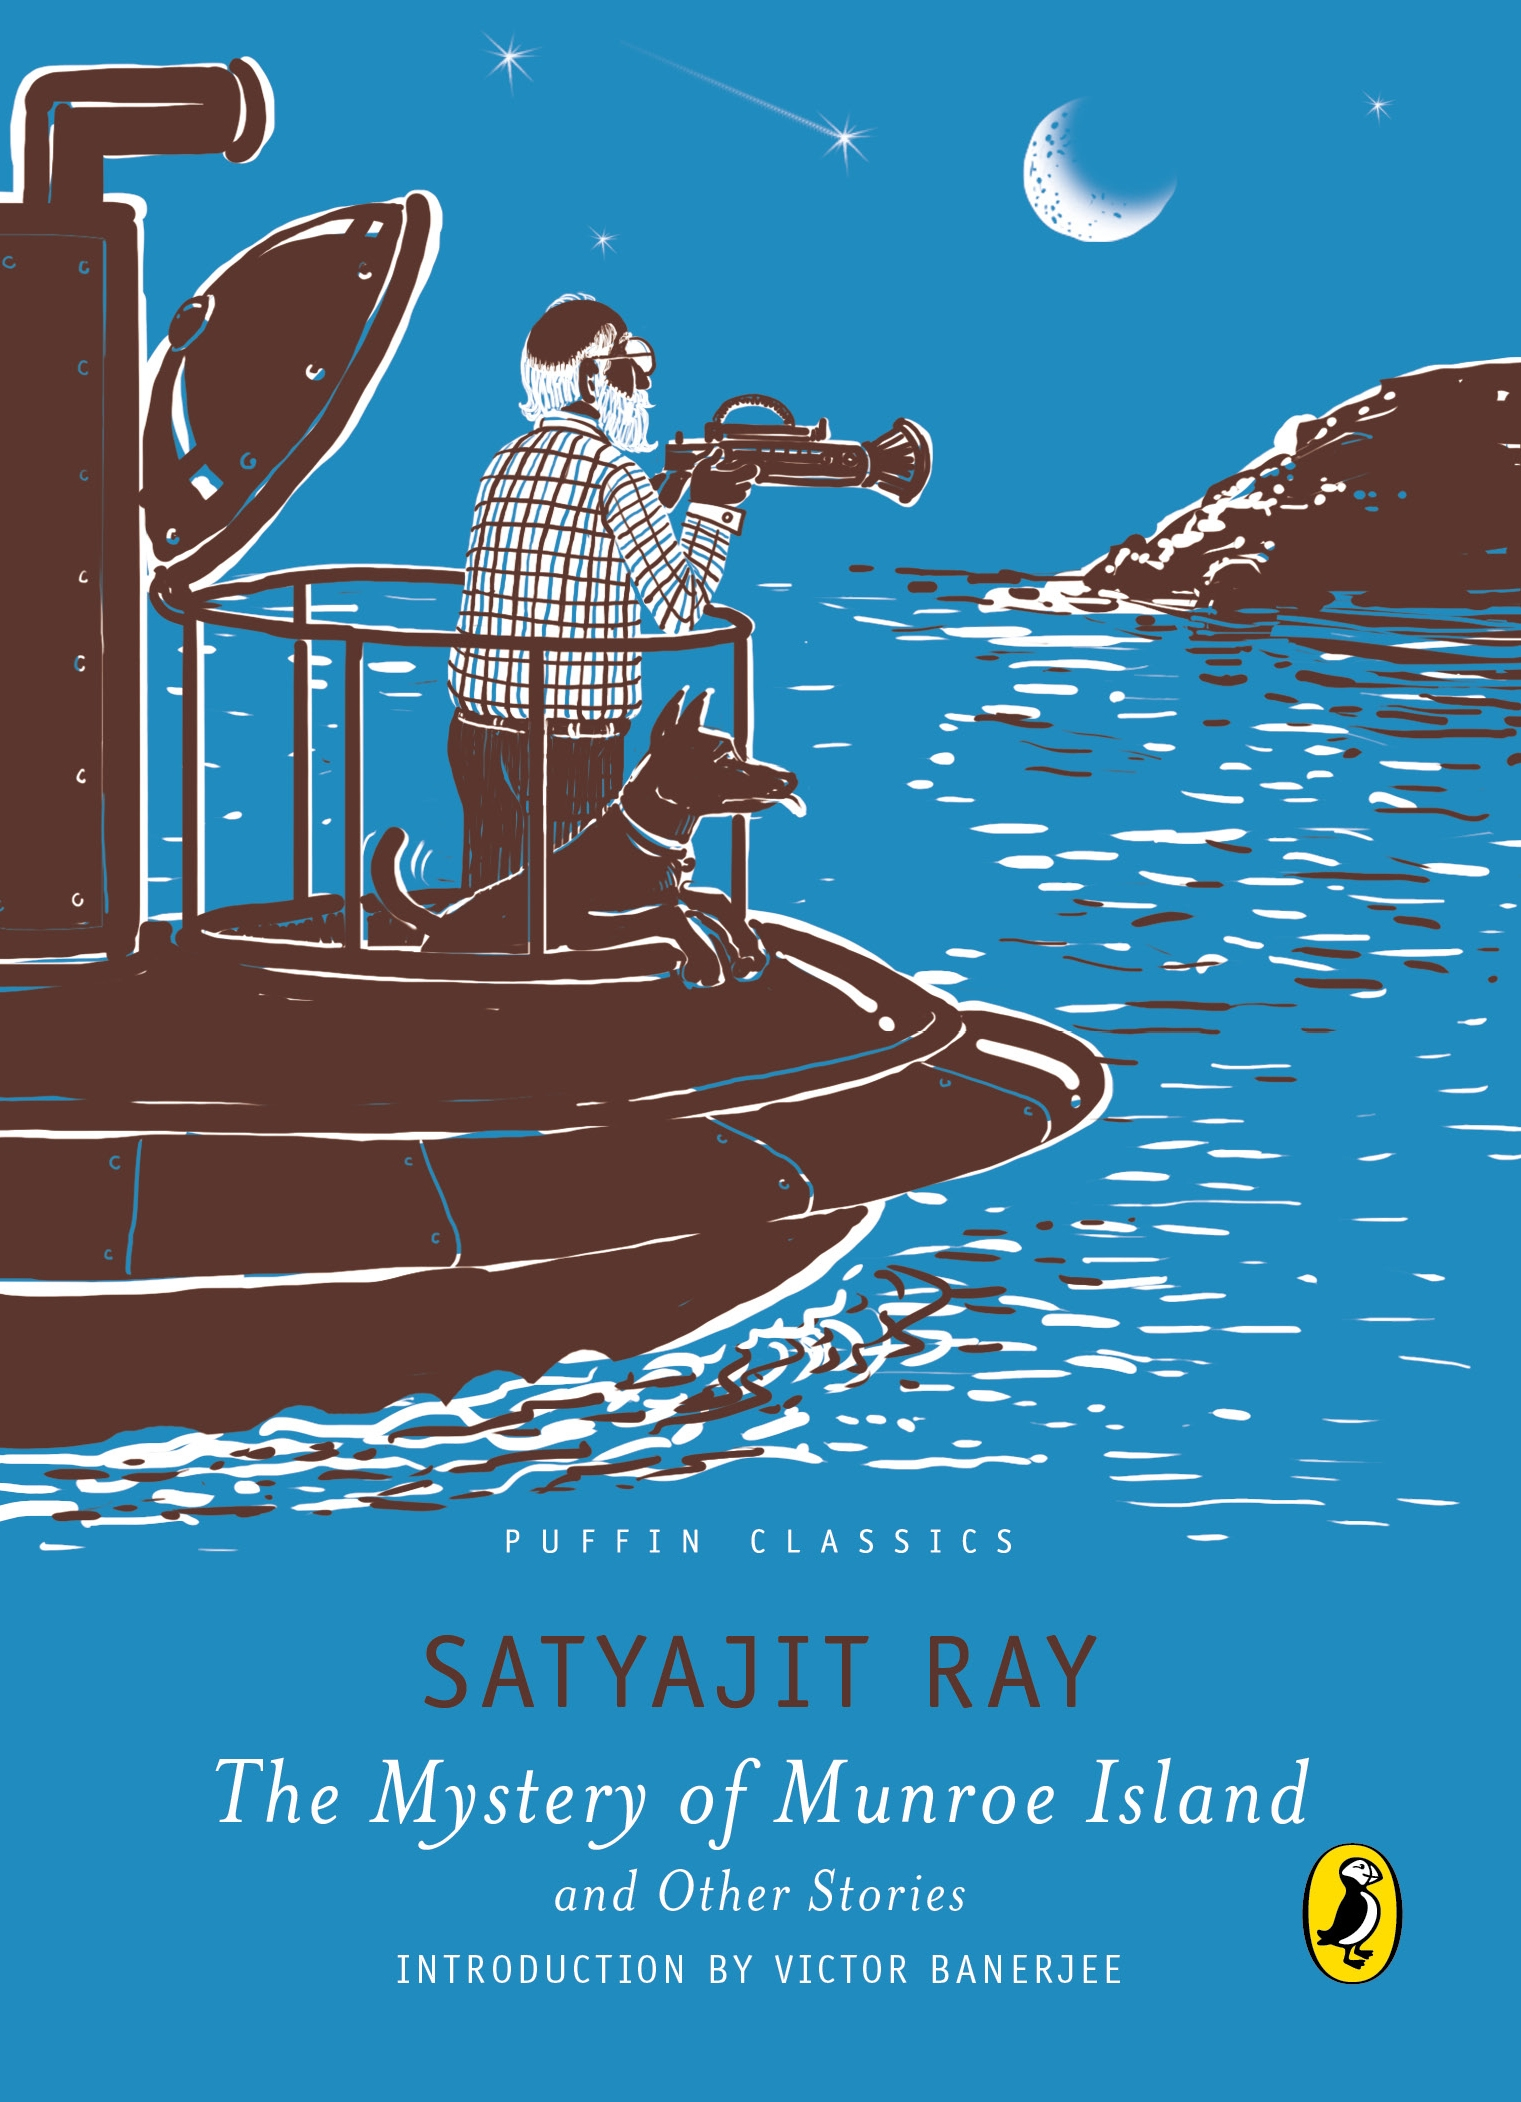 Puffin Classics: The Mystery of Munroe Island and Other Stories